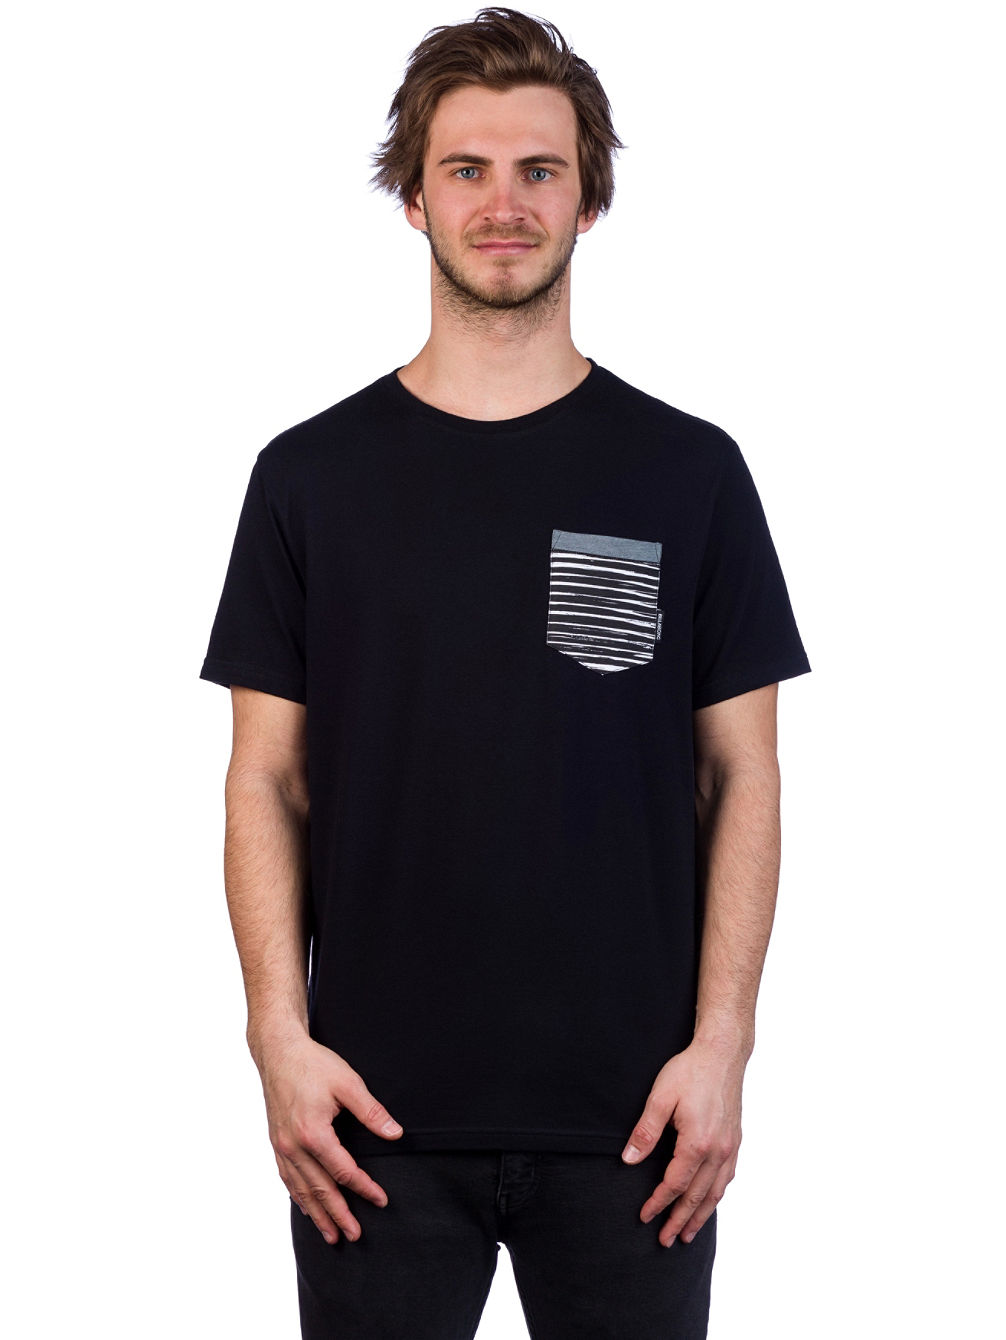 All Day Printed Crew T-Shirt